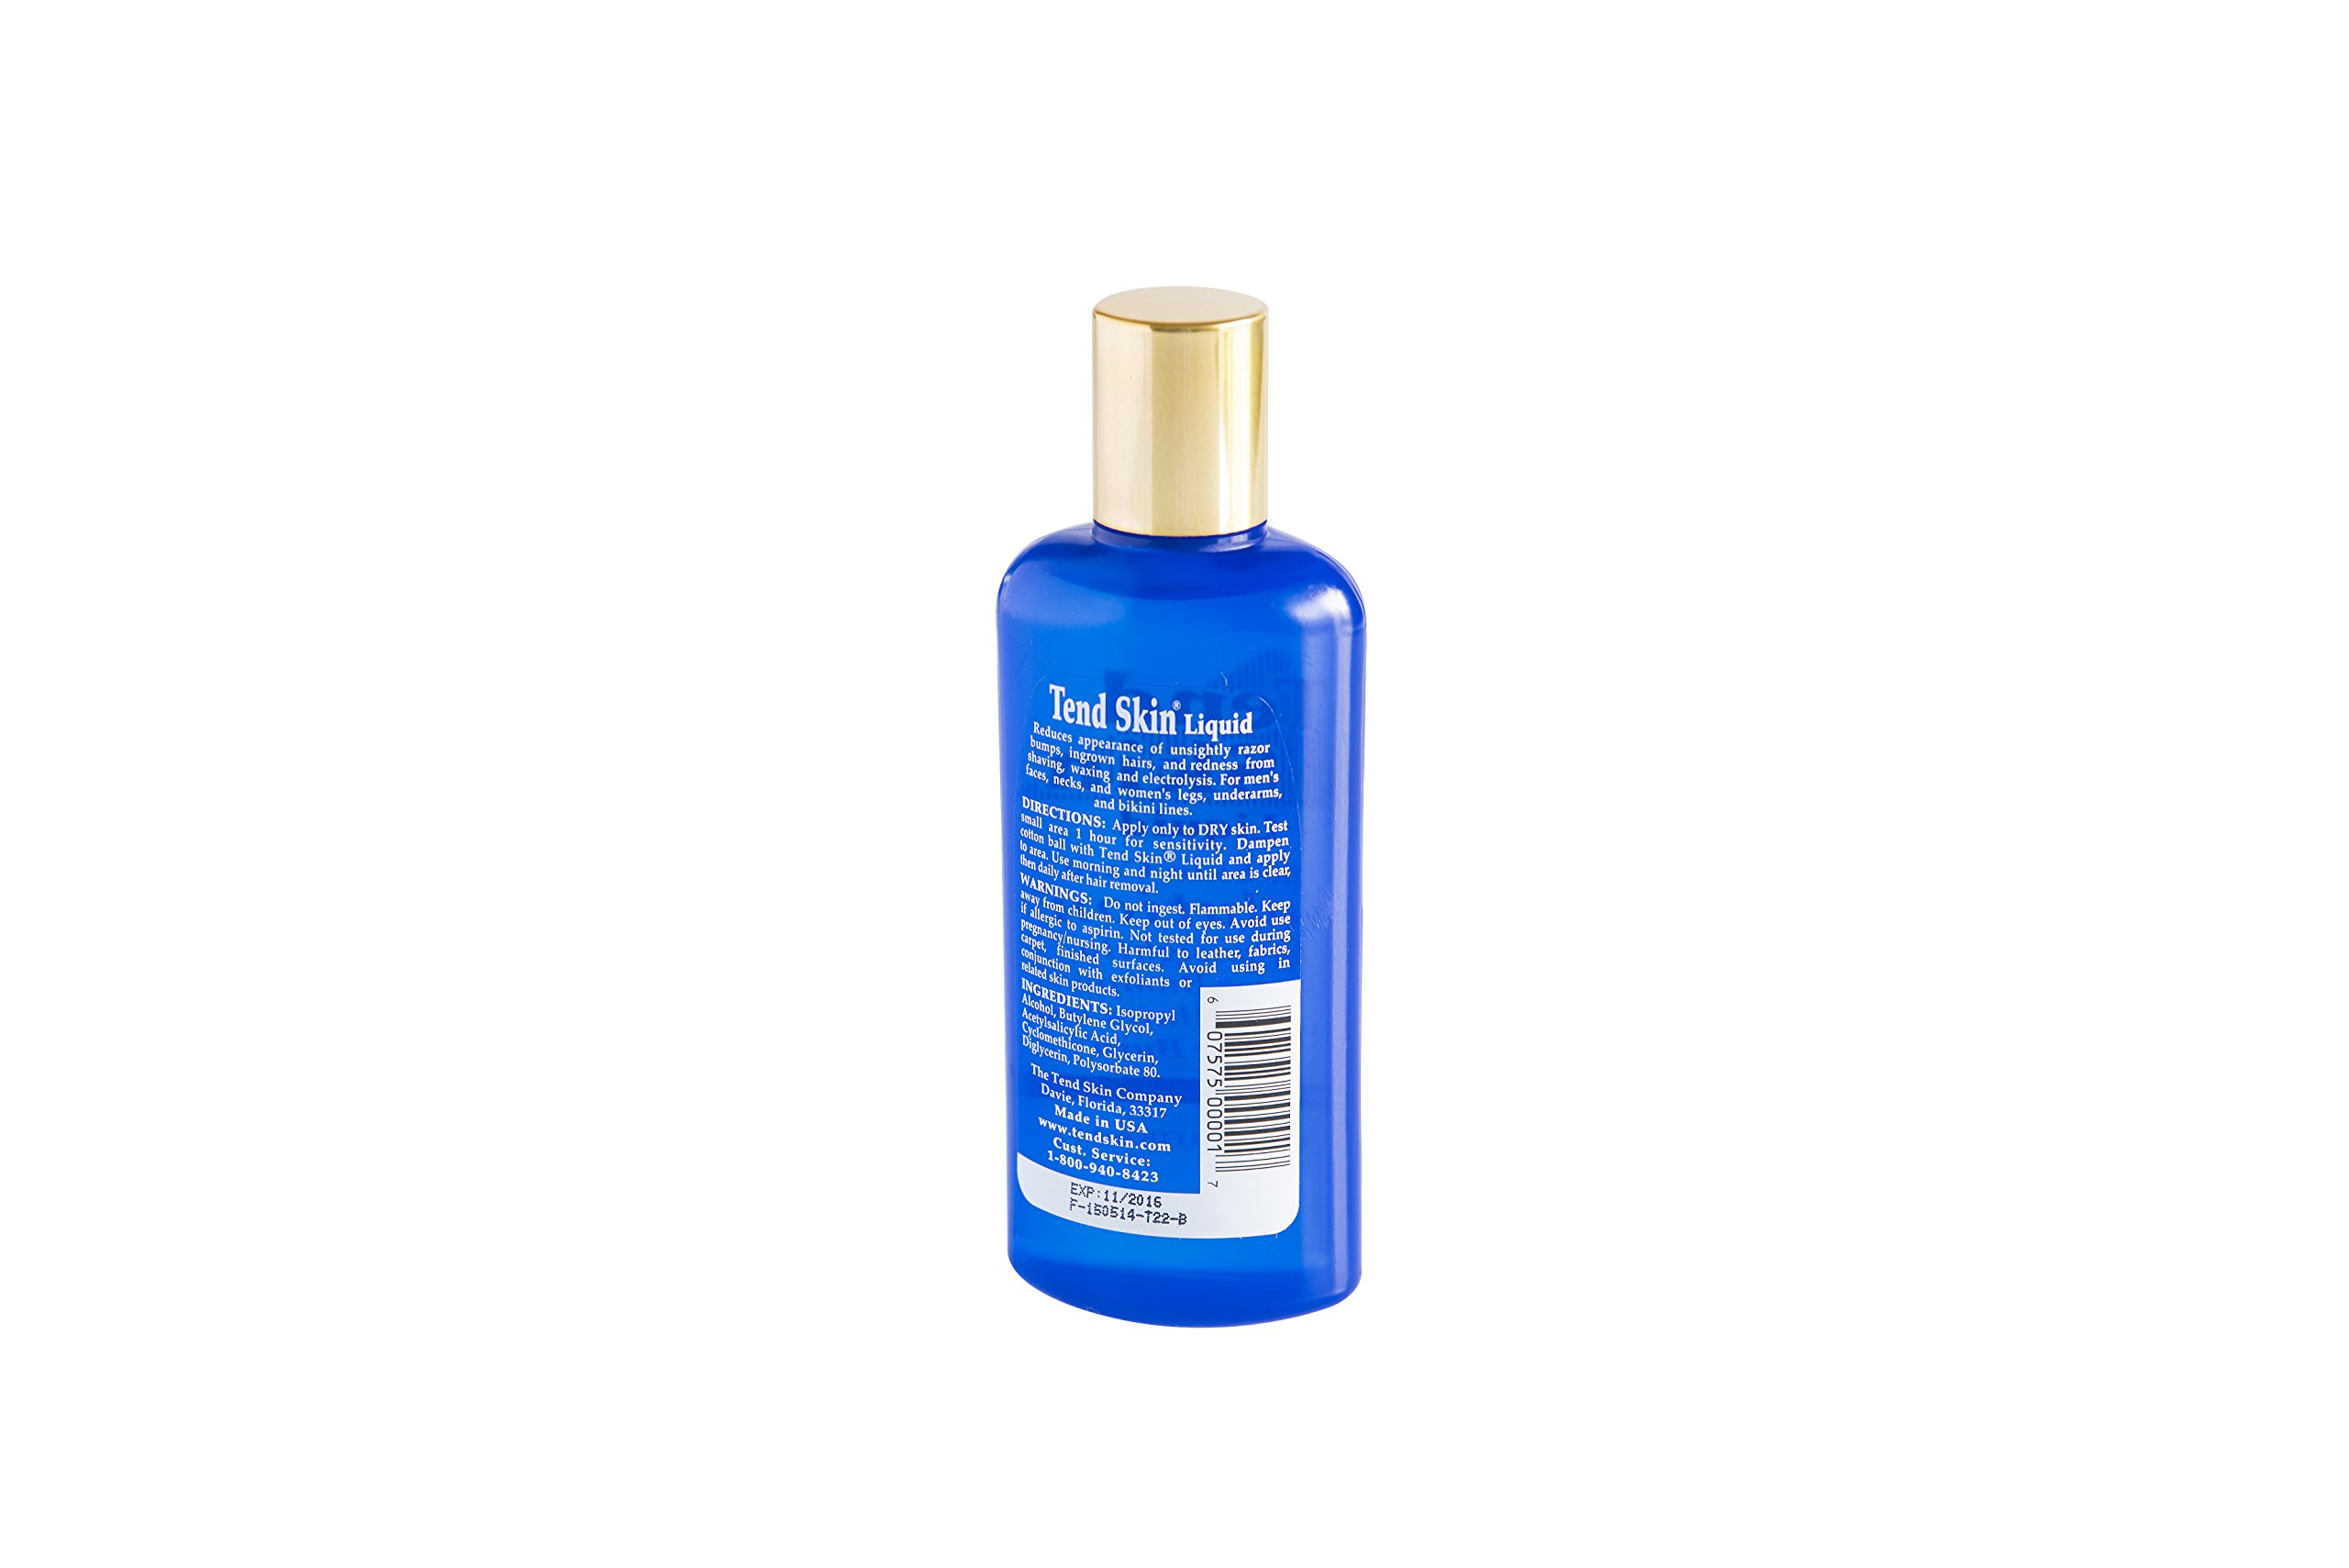 Tend Skin Liquid (4 oz) for Ingrown Hairs & Razor Bumps, For Use After Shave & Wax by Tend Skin (Image #2)